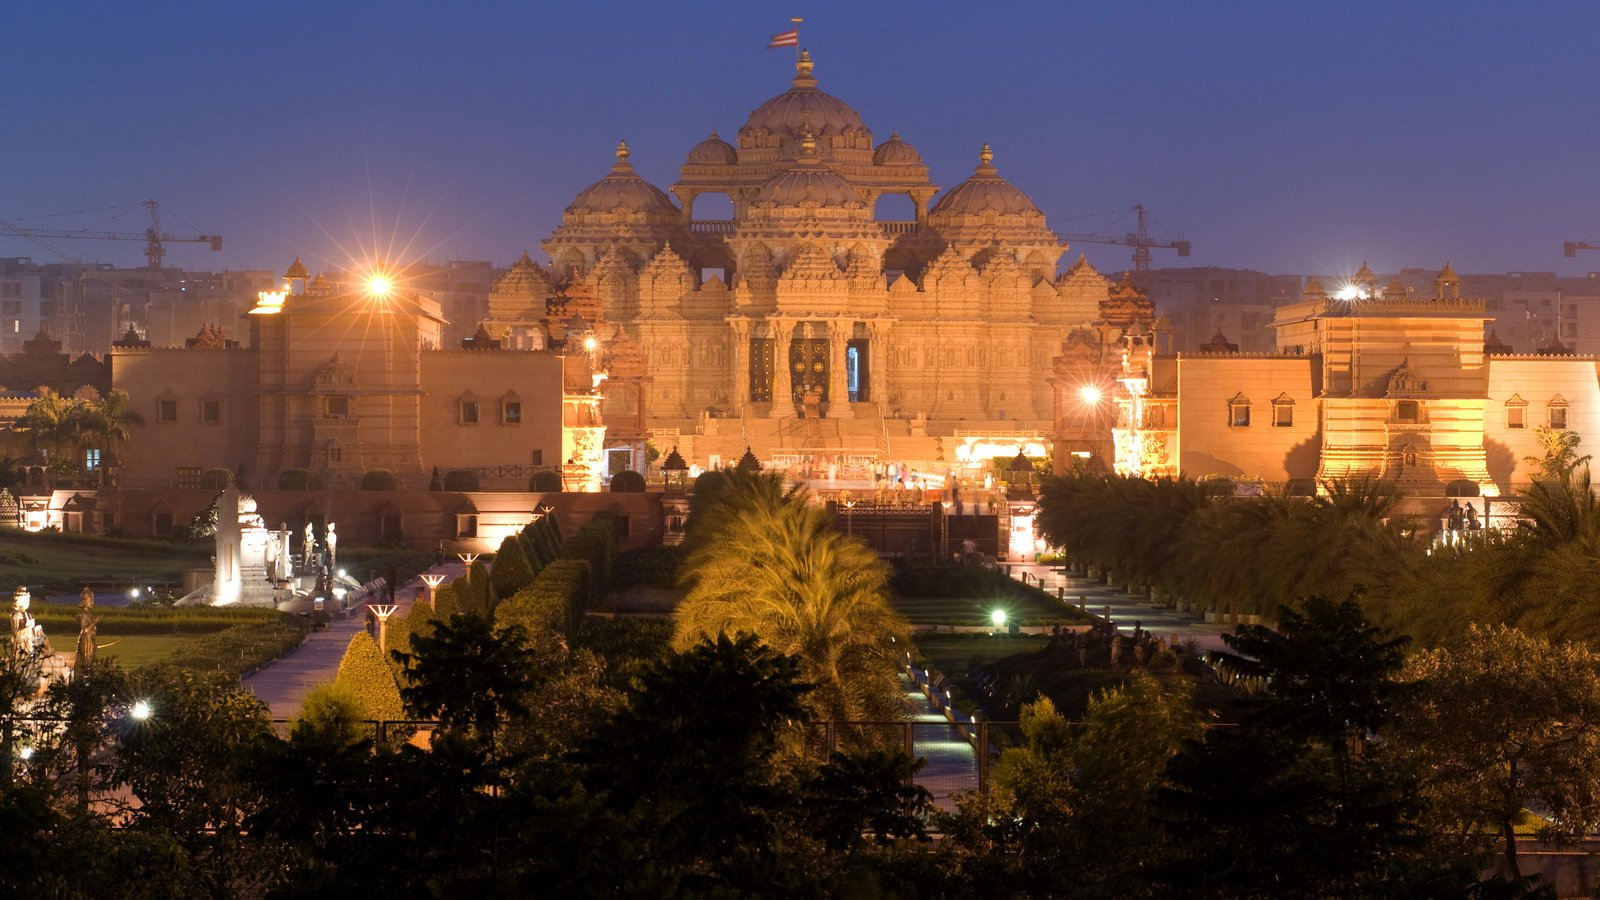 Swaminarayan akshardham temple pictures view photos images of swaminarayan akshardham temple featuring heritage architecture religious elements and a park altavistaventures Gallery